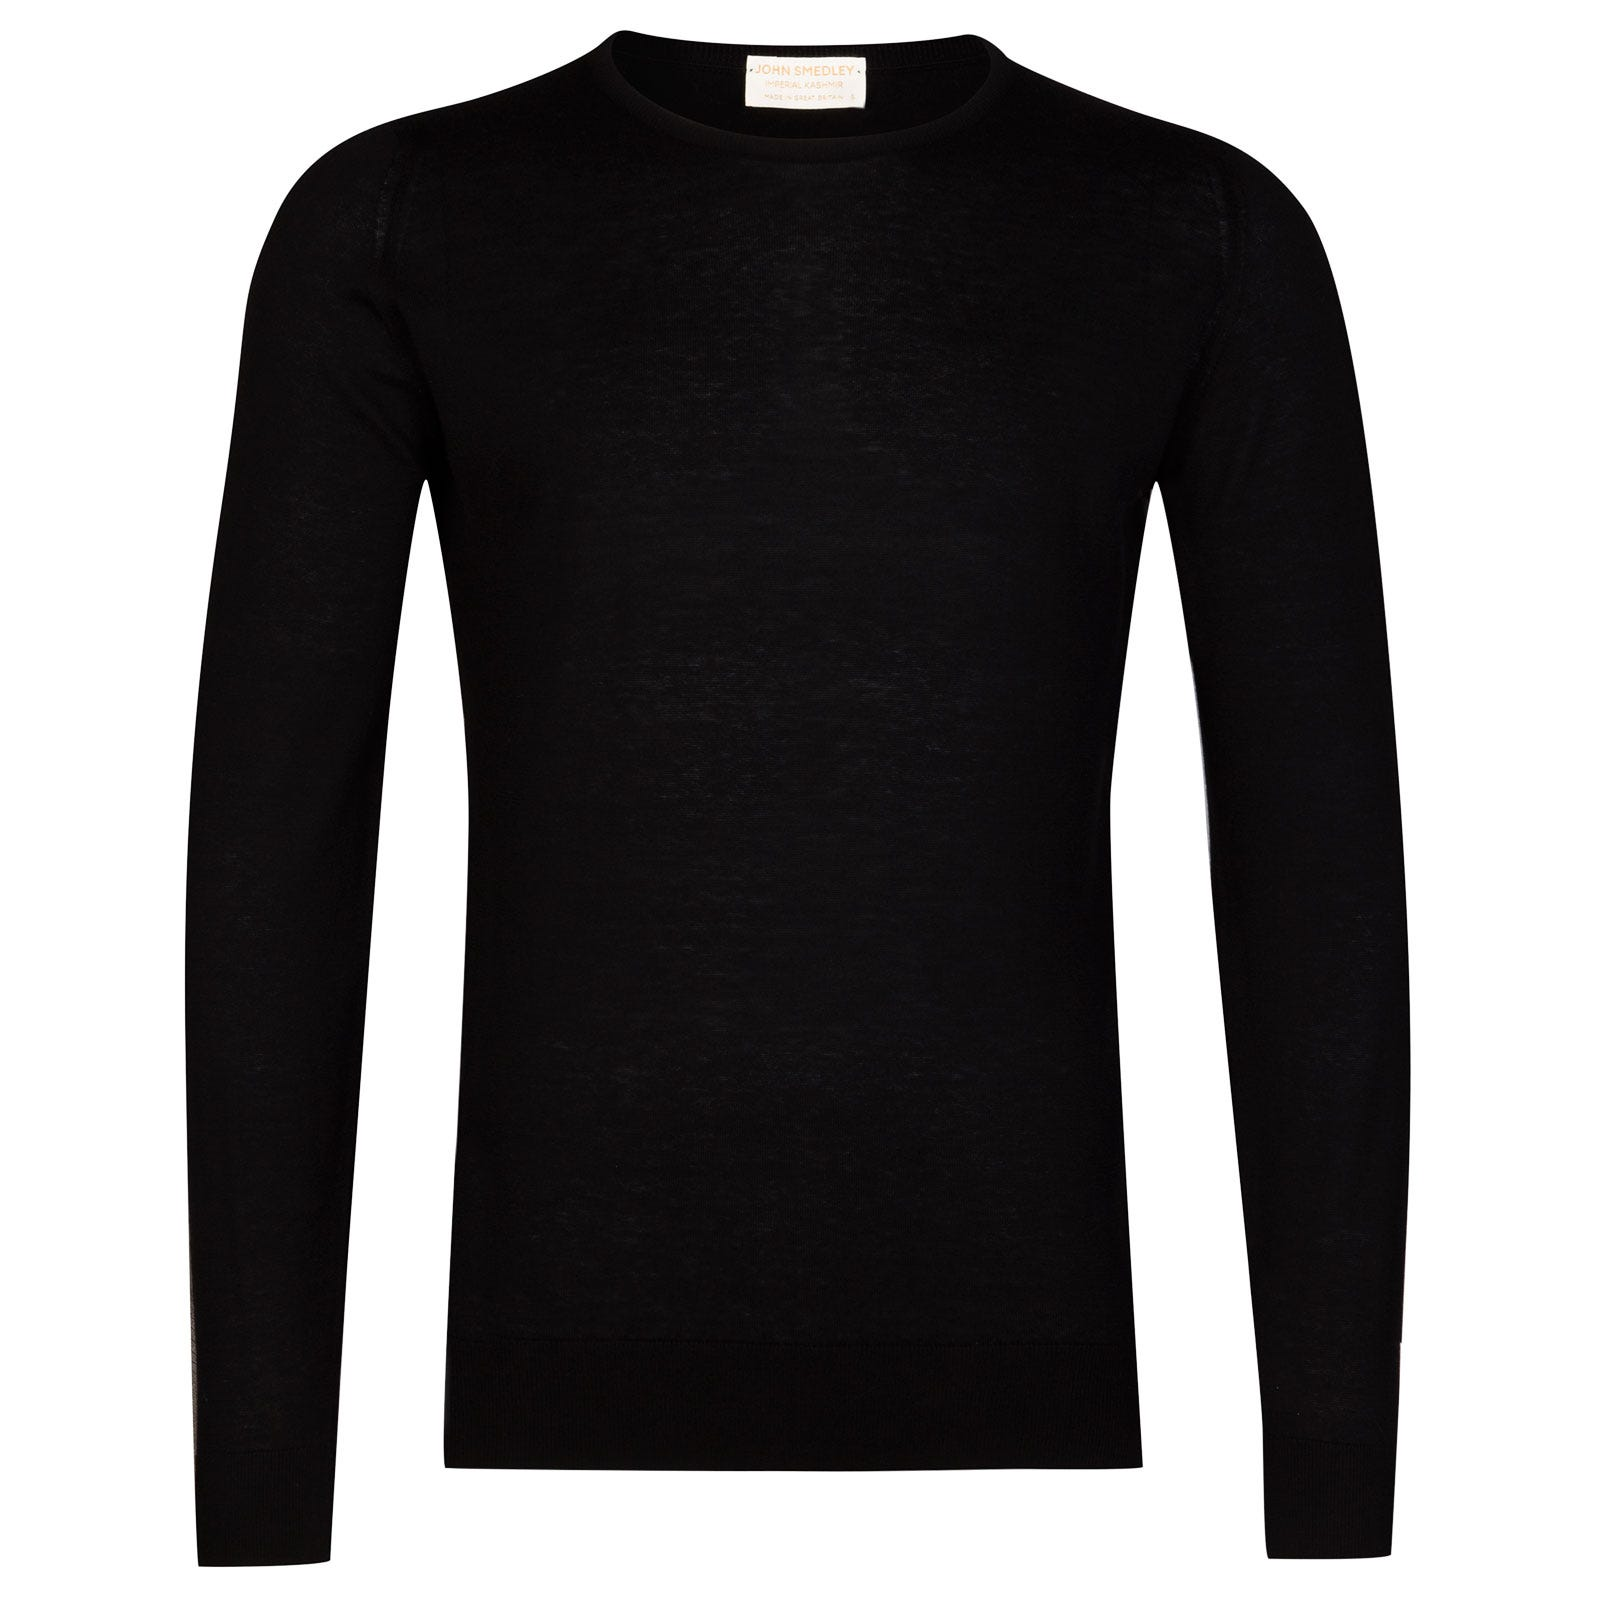 John Smedley theon Sea Island Cotton and Cashmere Pullover in Black-L